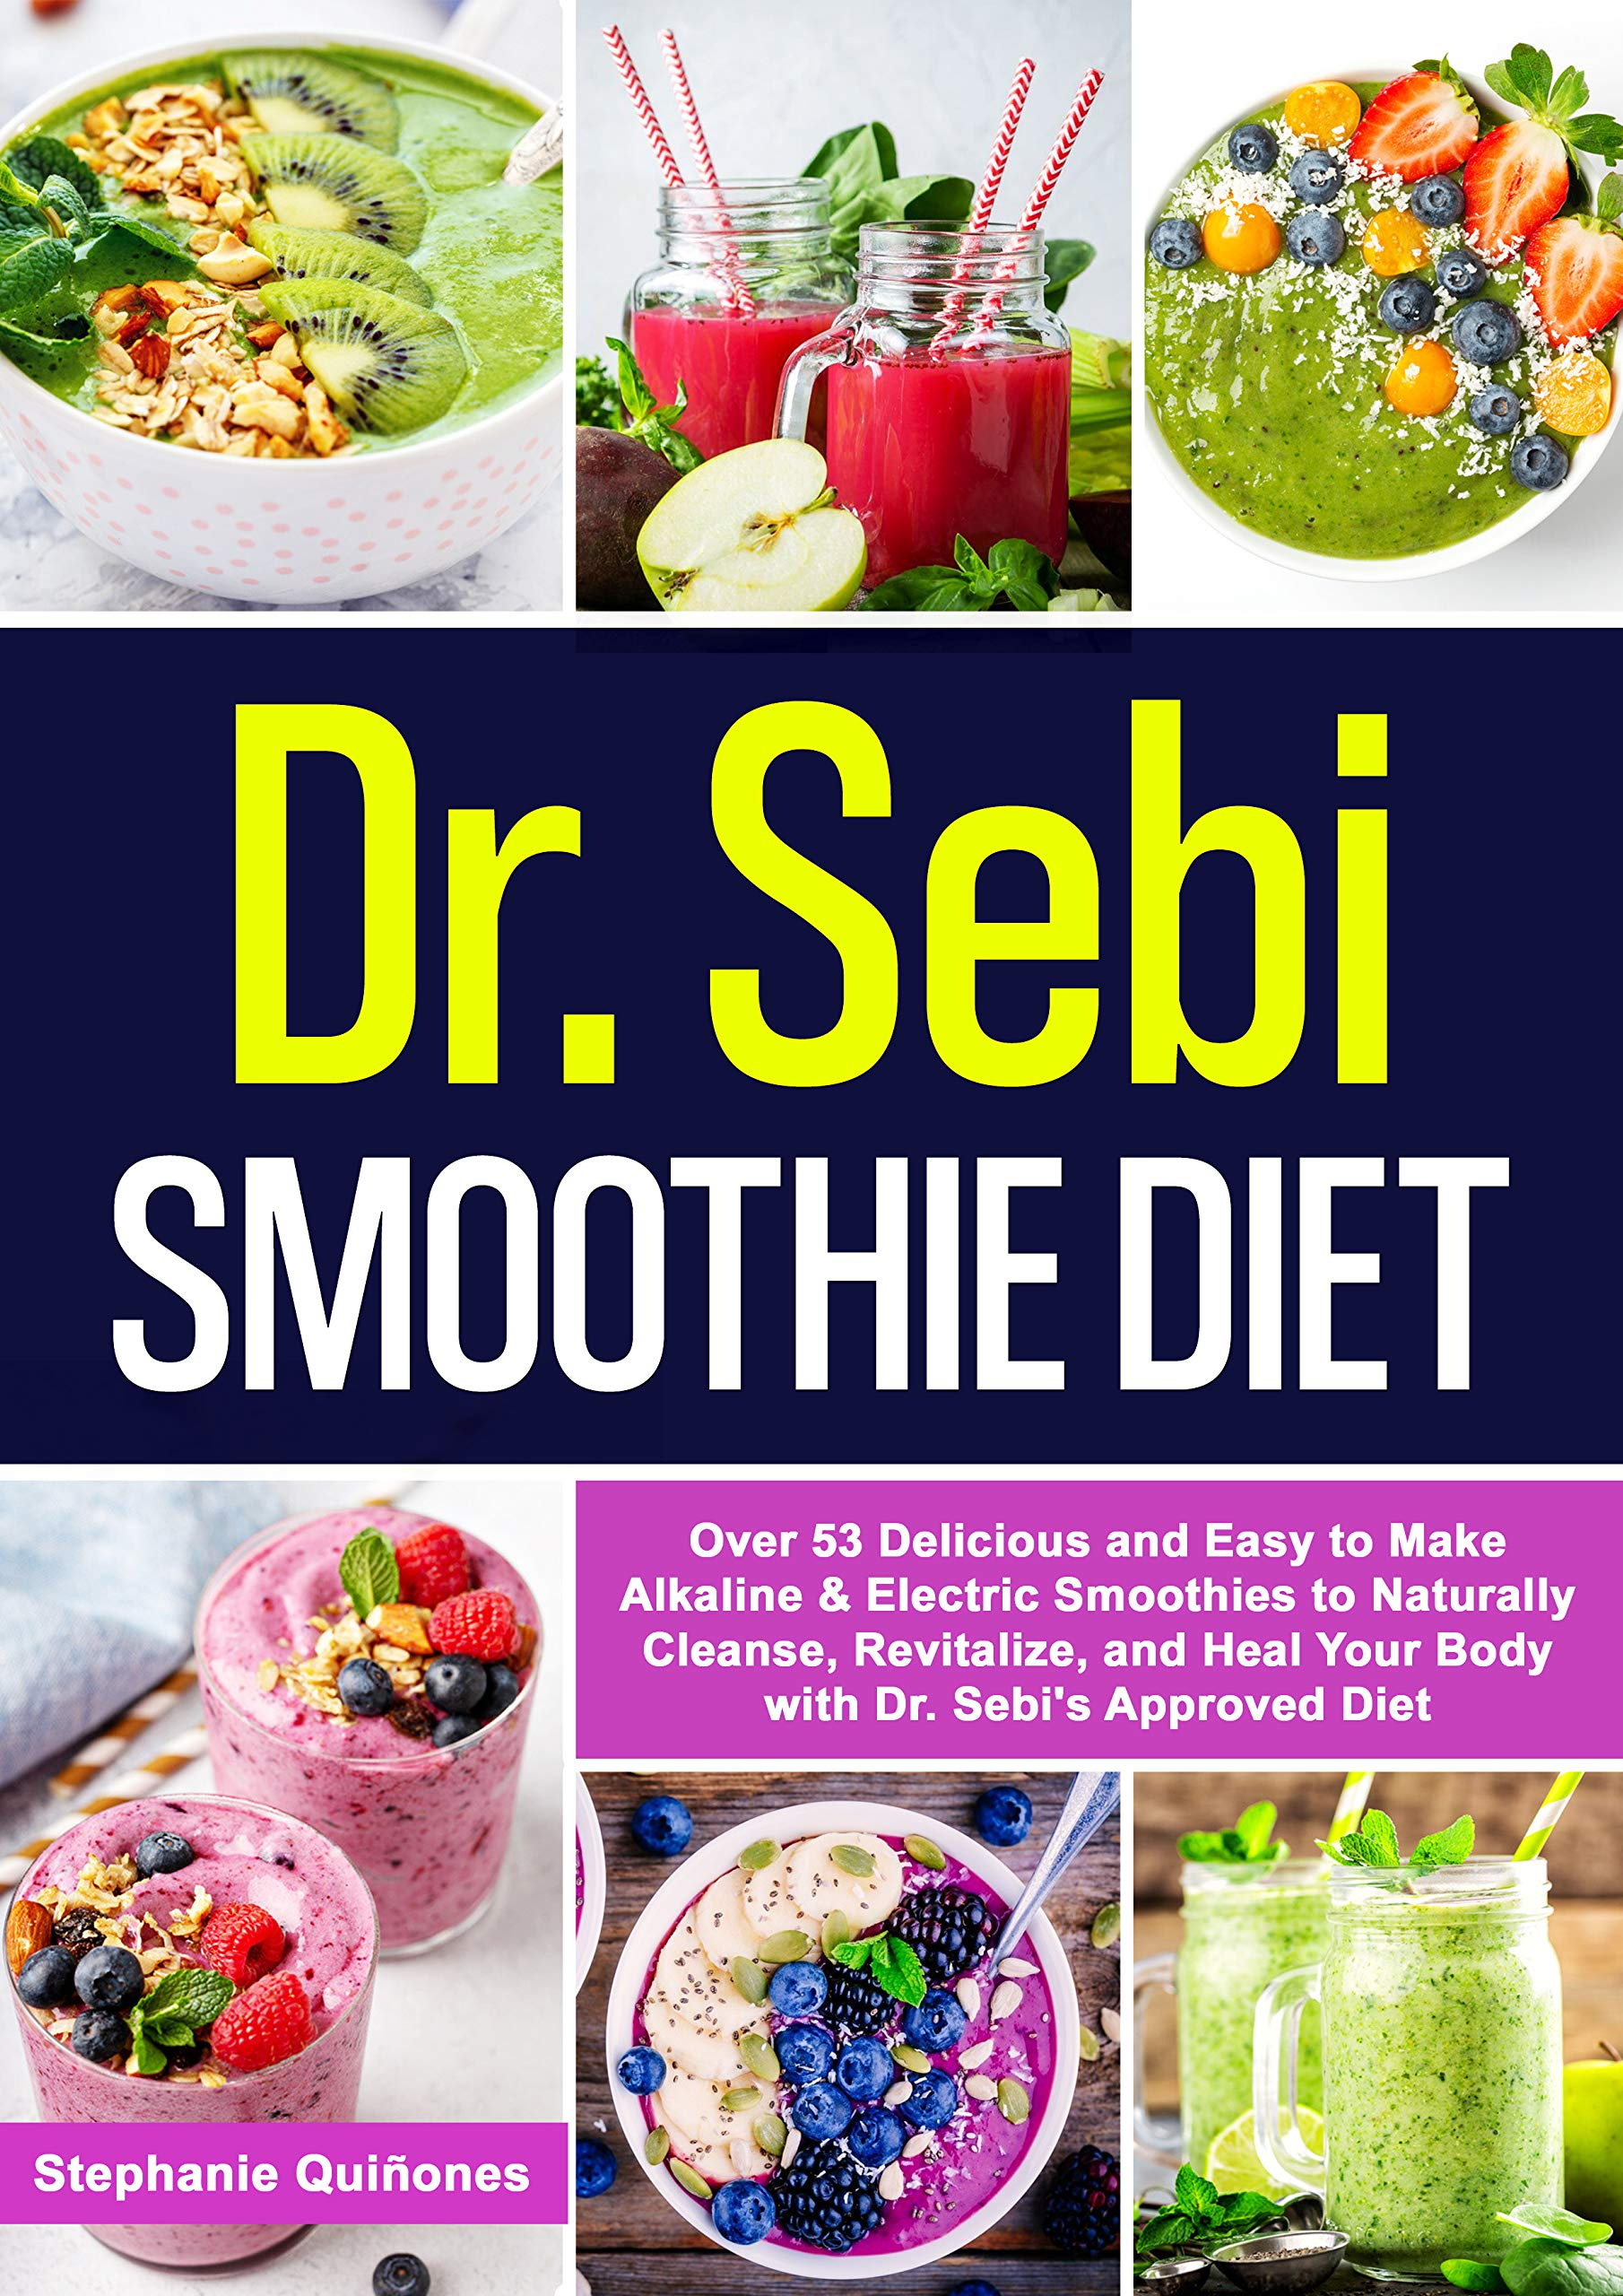 Dr. Sebi Smoothie Diet: Over 53 Delicious and Easy to Make Alkaline & Electric Smoothies to Naturally Cleanse, Revitalize, and Heal Your Body with Dr. ... Diet (Dr. Sebi's Alkaline Smoothies Book 2)